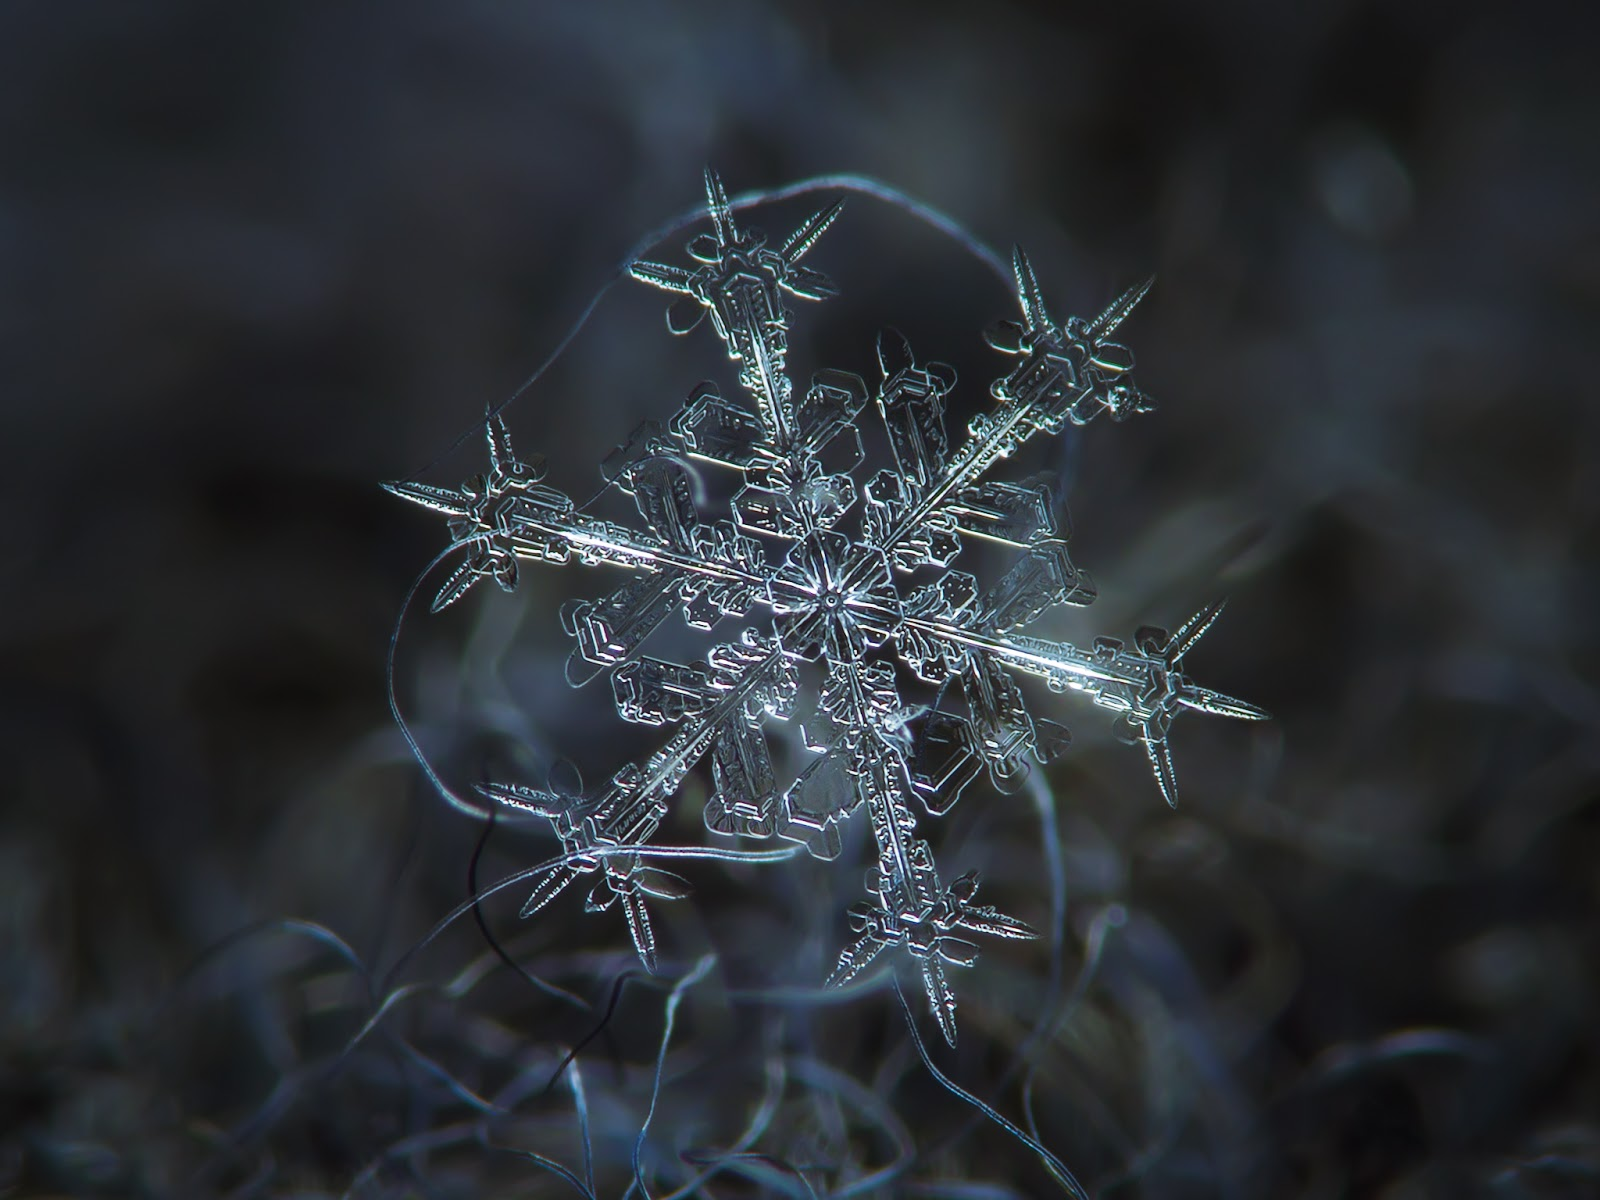 PHOTOGRAPHY] Snowflakes by Alexey Kljatov - ART FOR YOUR WALLPAPER